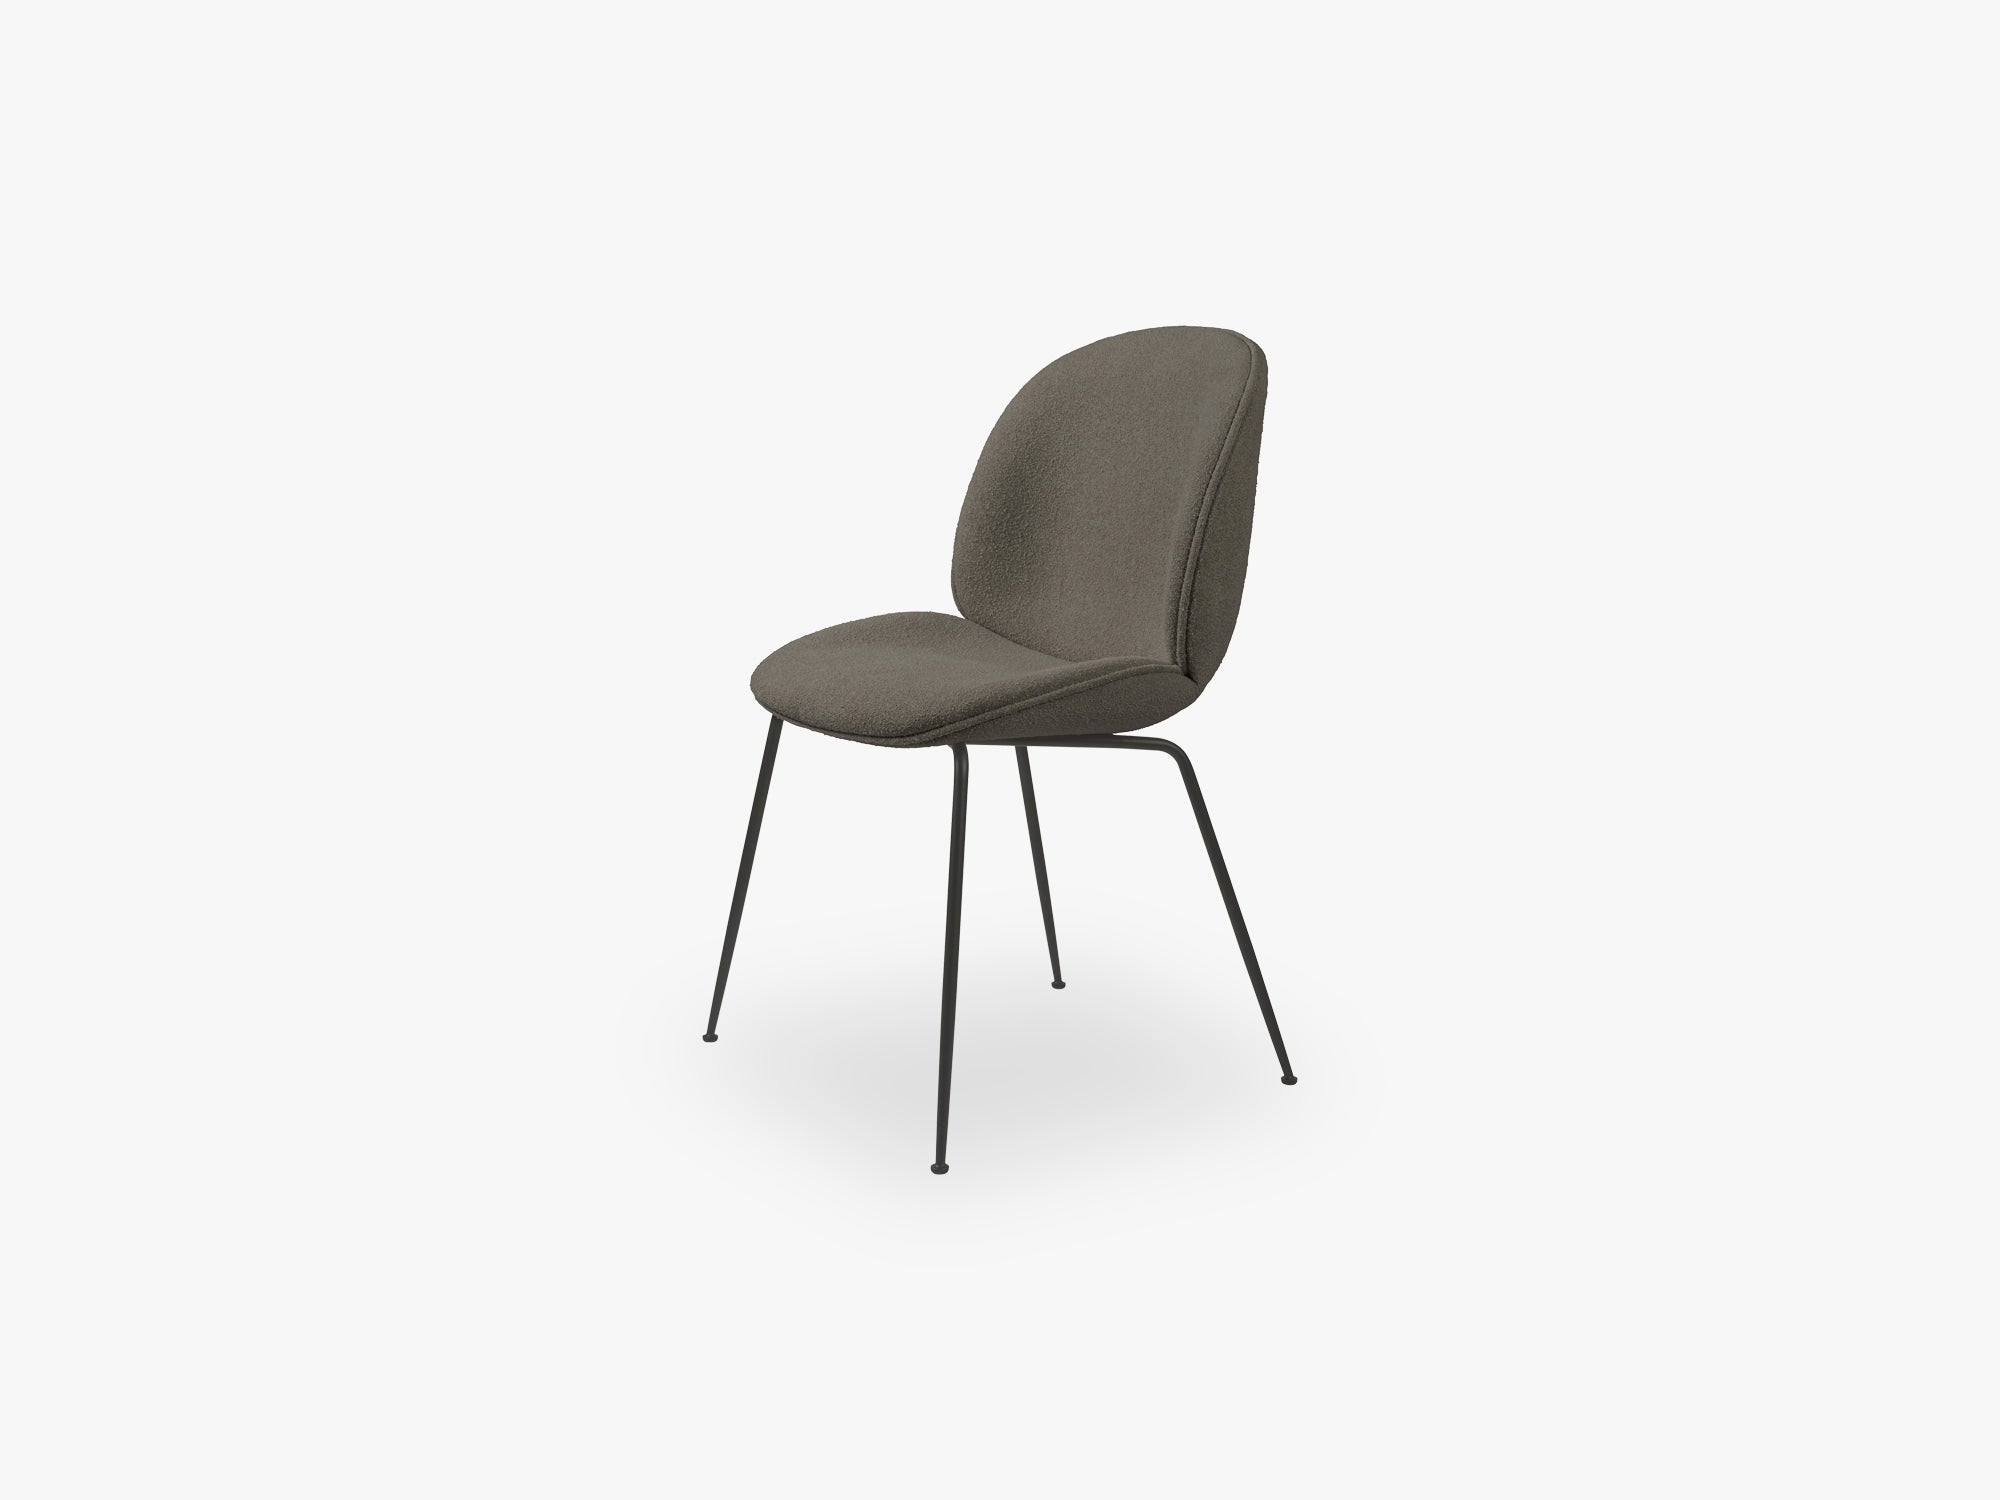 Beetle Dining Chair (Fully), Black Matt, Grp 02, Light Bouclé, GUBI (004) fra GUBI